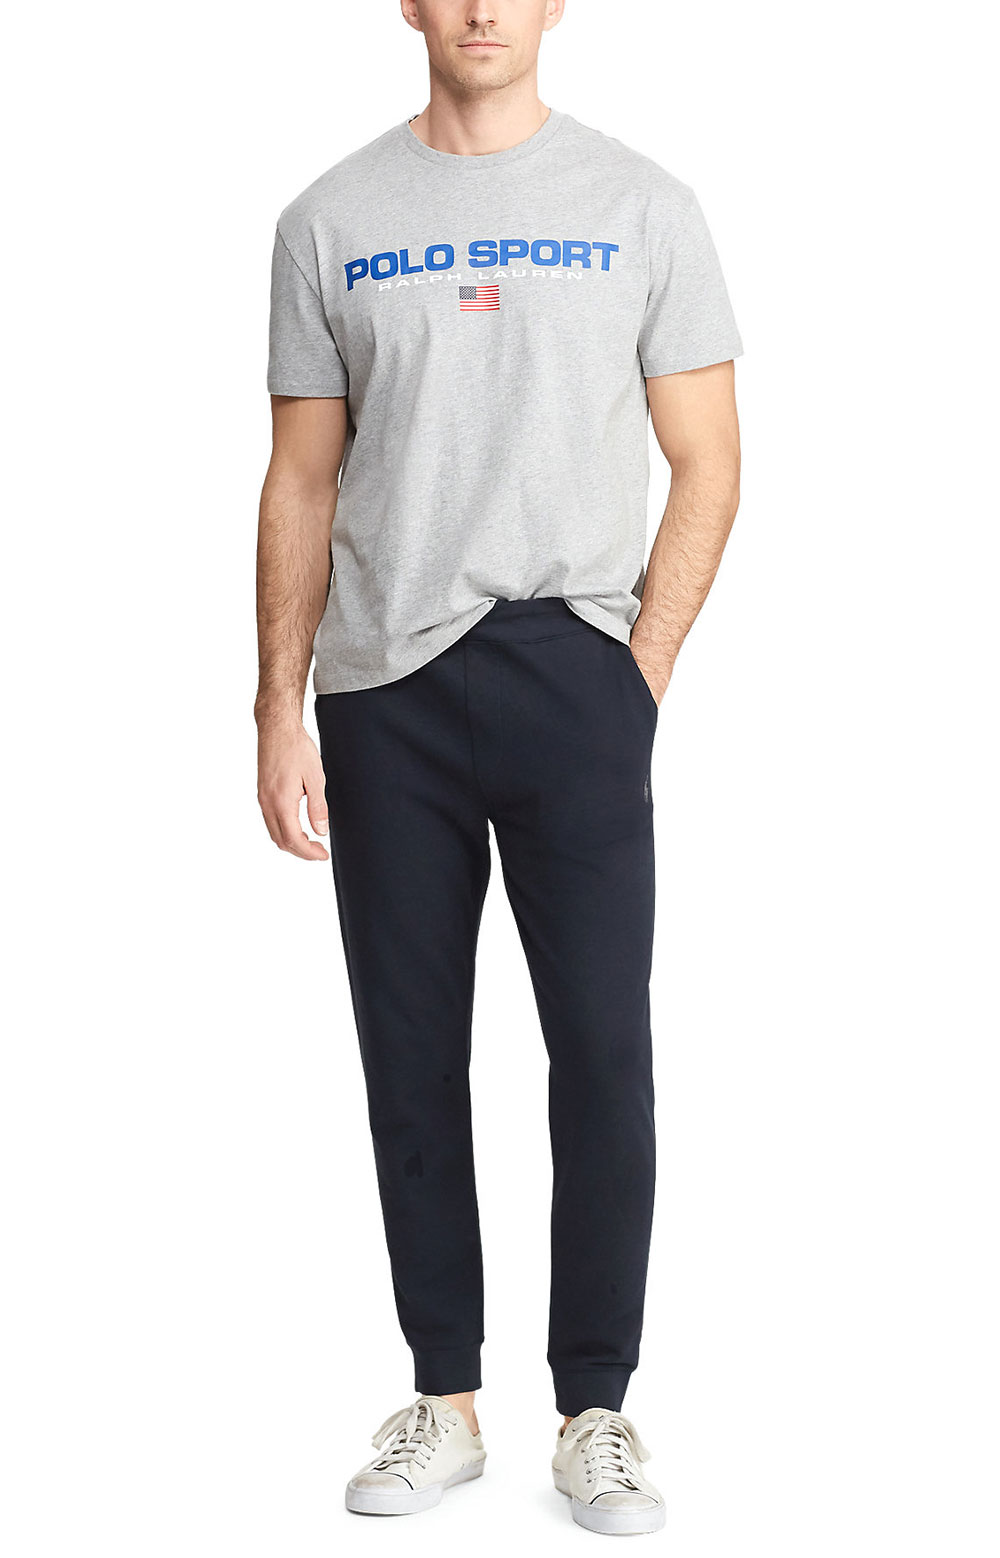 Classic Fit Polo Sport T-Shirt - Andover Heather  2